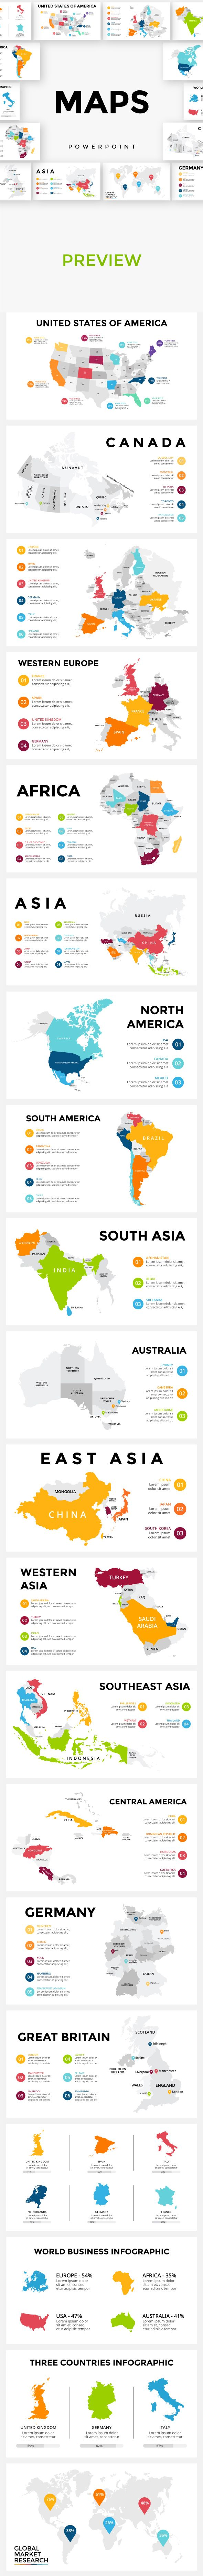 Maps | Powerpoint — Powerpoint PPT #australia #country • Available here ➝ https://graphicriver.net/item/maps-powerpoint/20918178?ref=pxcr